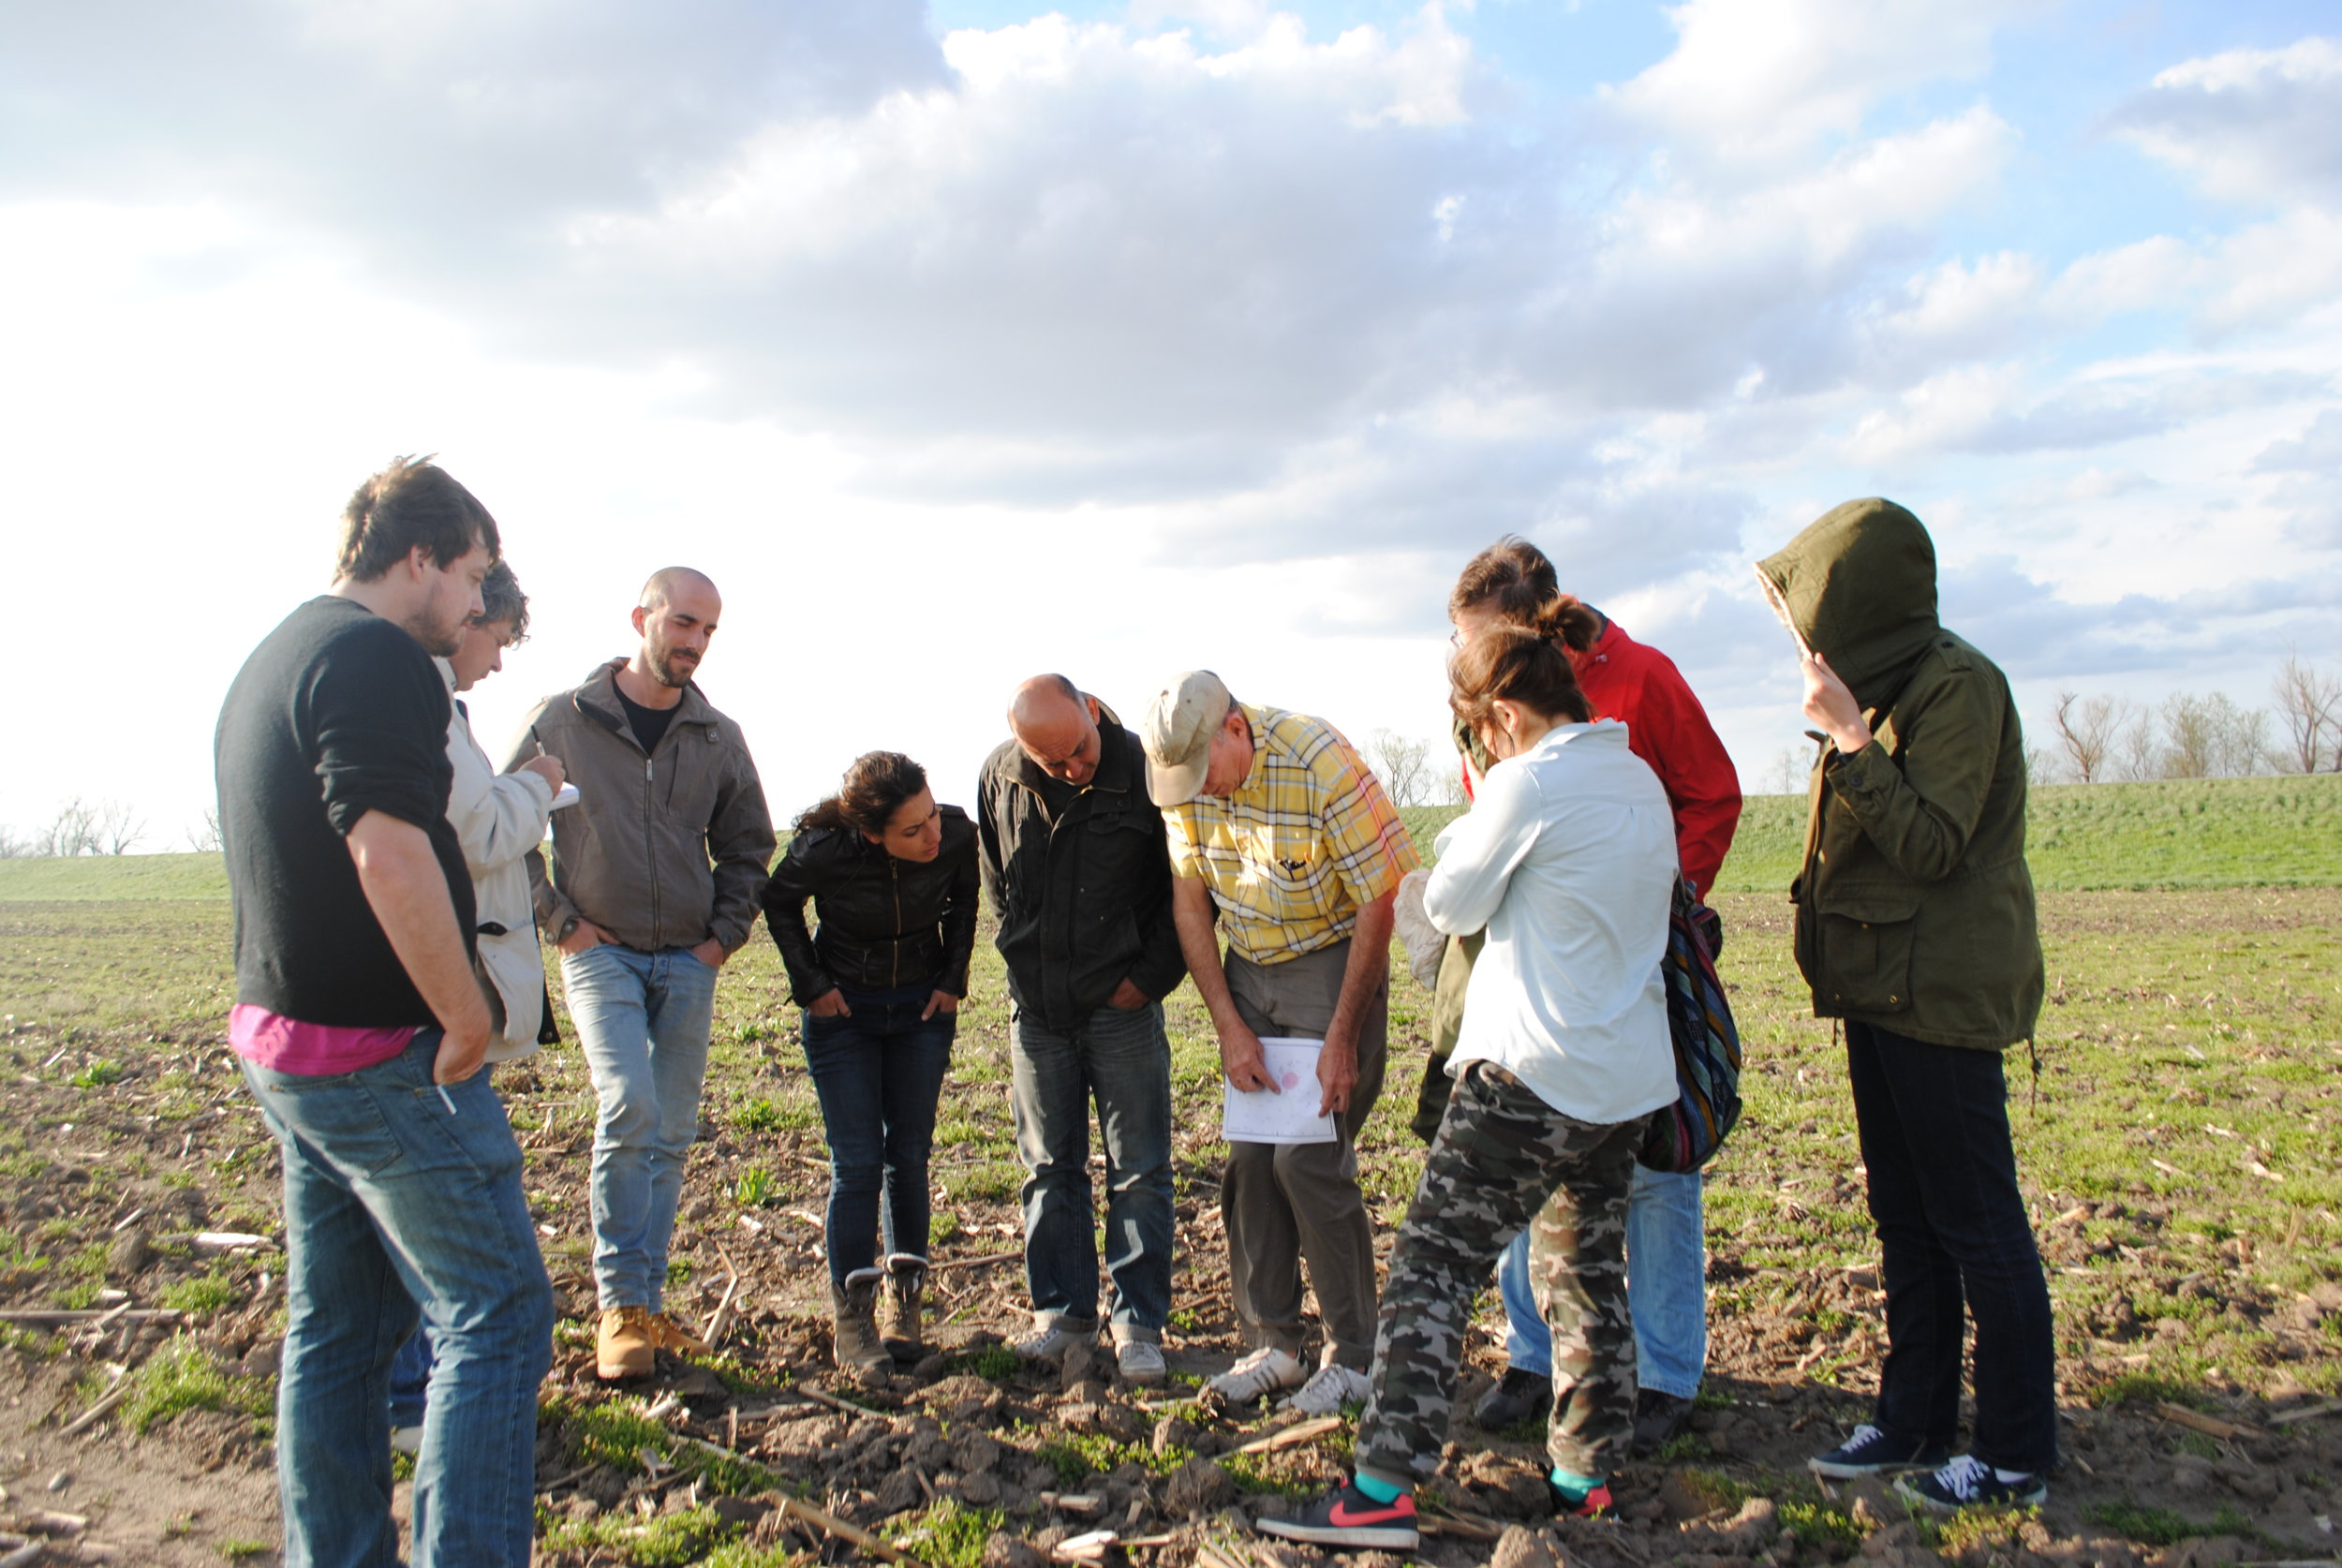 Italian student archaeologists tour the Cahokia Mounds World Heritage Site